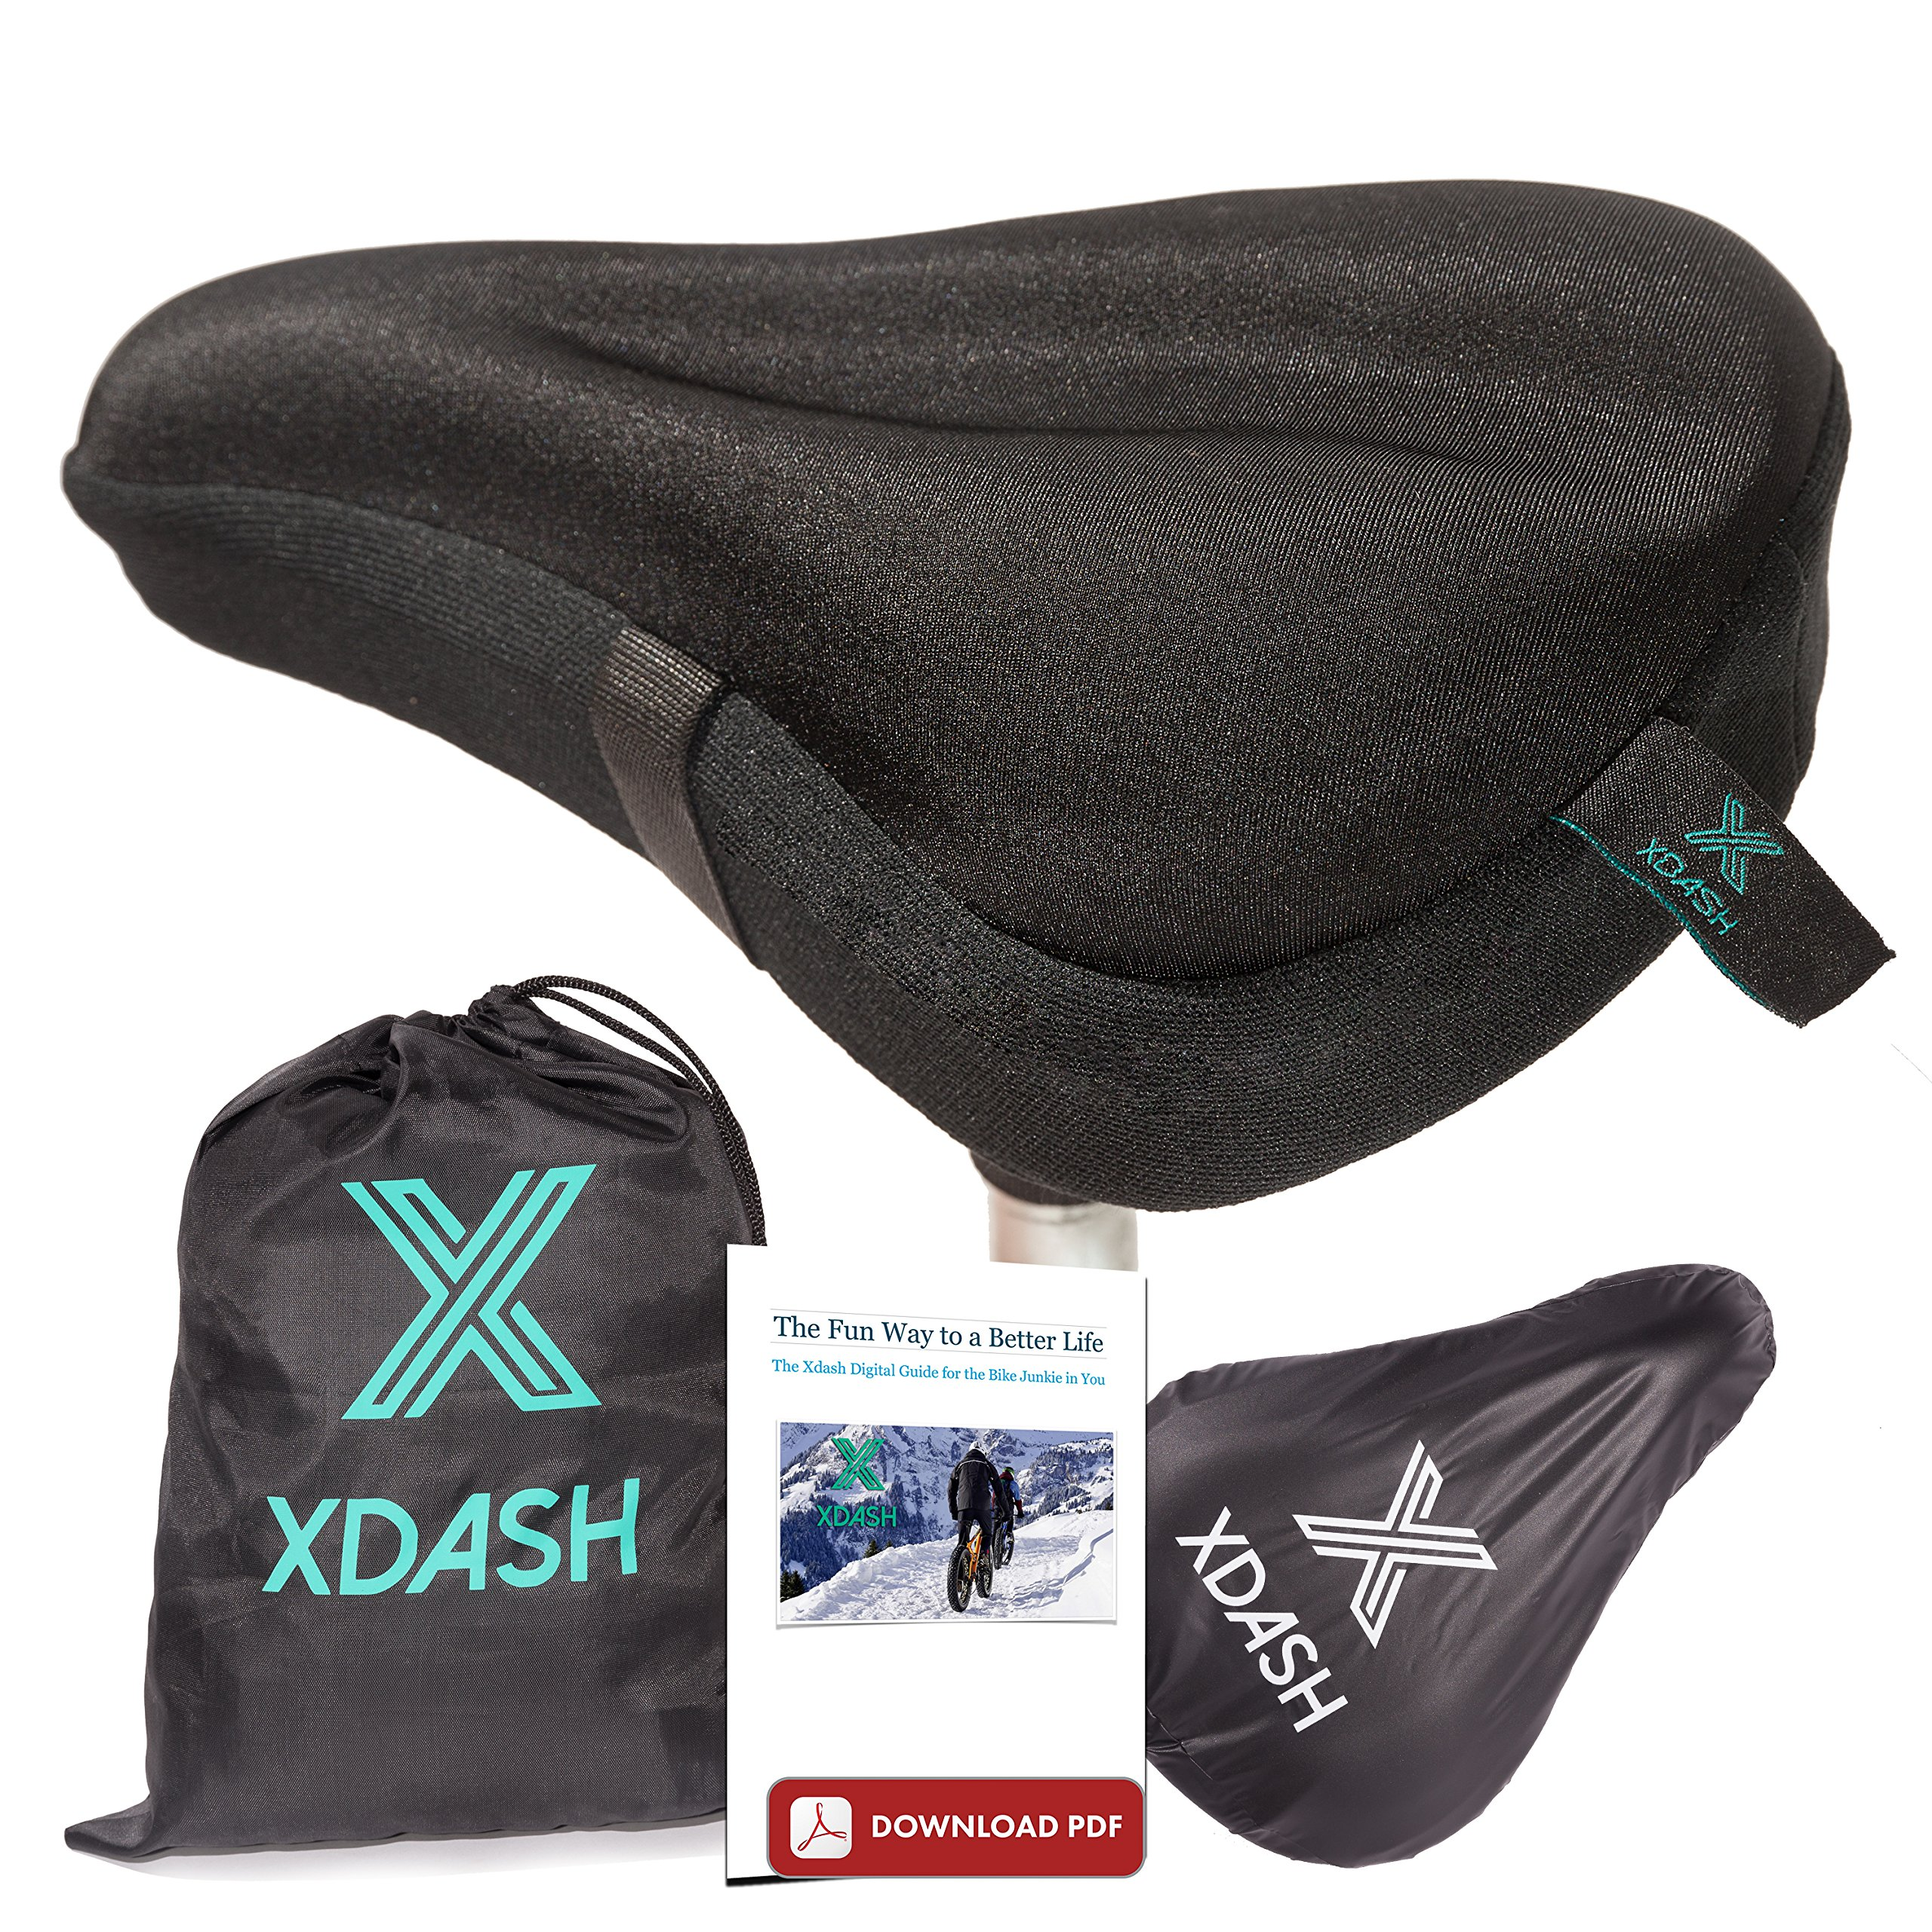 XDASH Premium Gel Bike Seat Cover- Bike Seat Cushion Cover-Padded Saddle Cover for Indoors and Outdoors Cycling-Road or Stationary Bicycle Seat Cover +E Book Healthy Life Style Tips